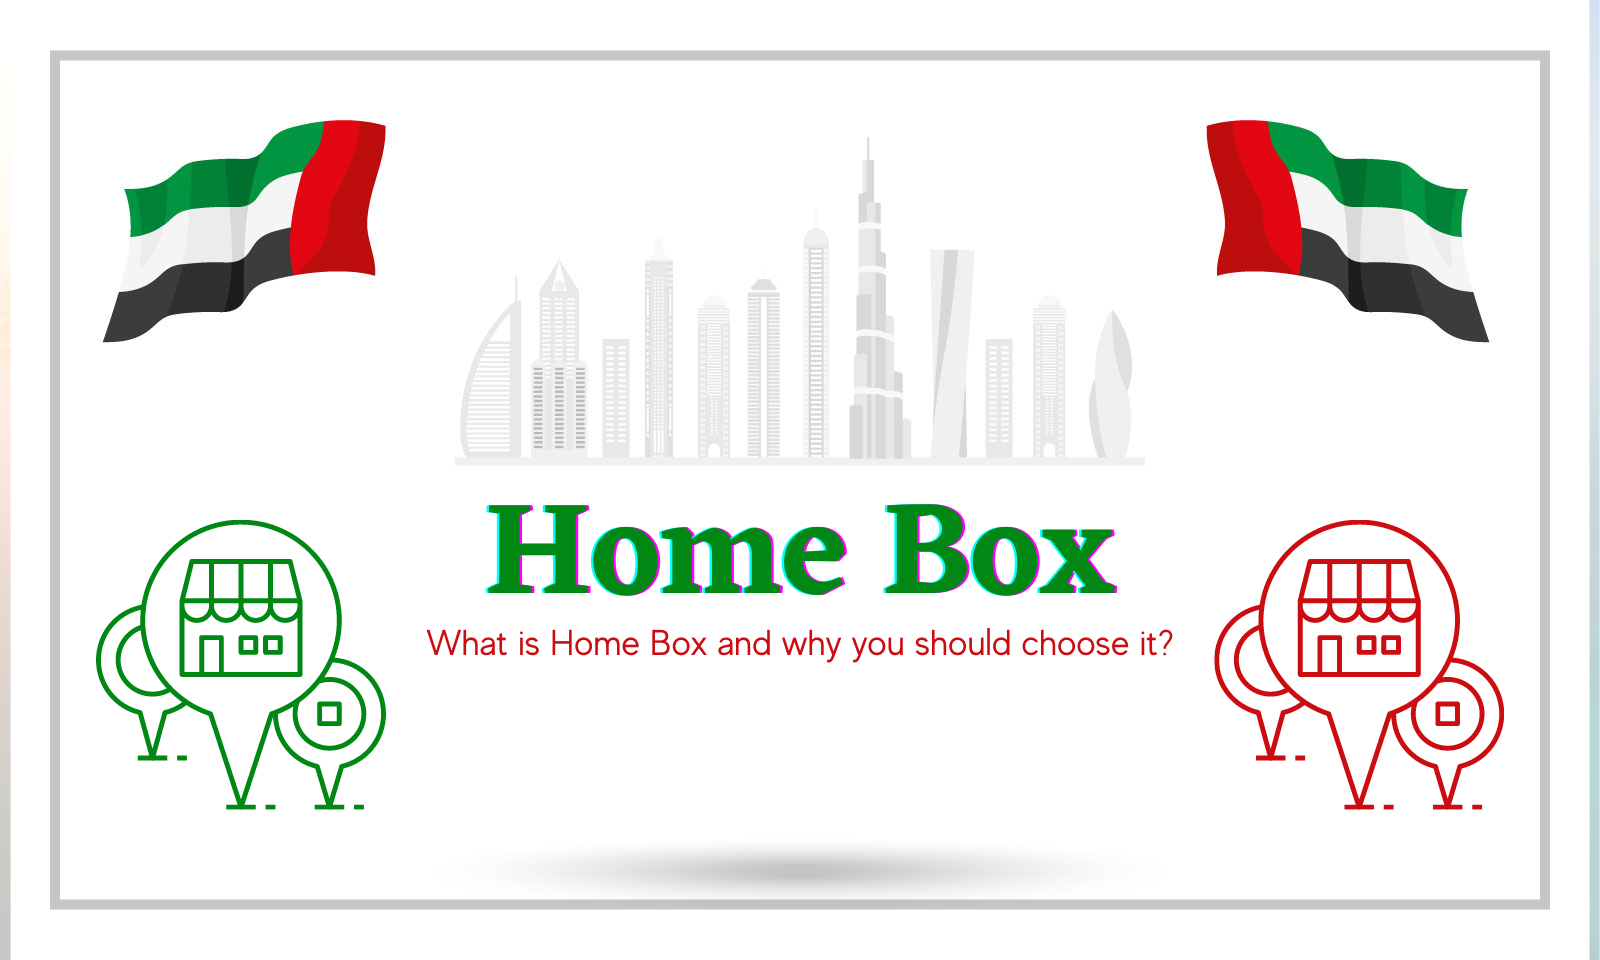 Things you need to know about Home Box